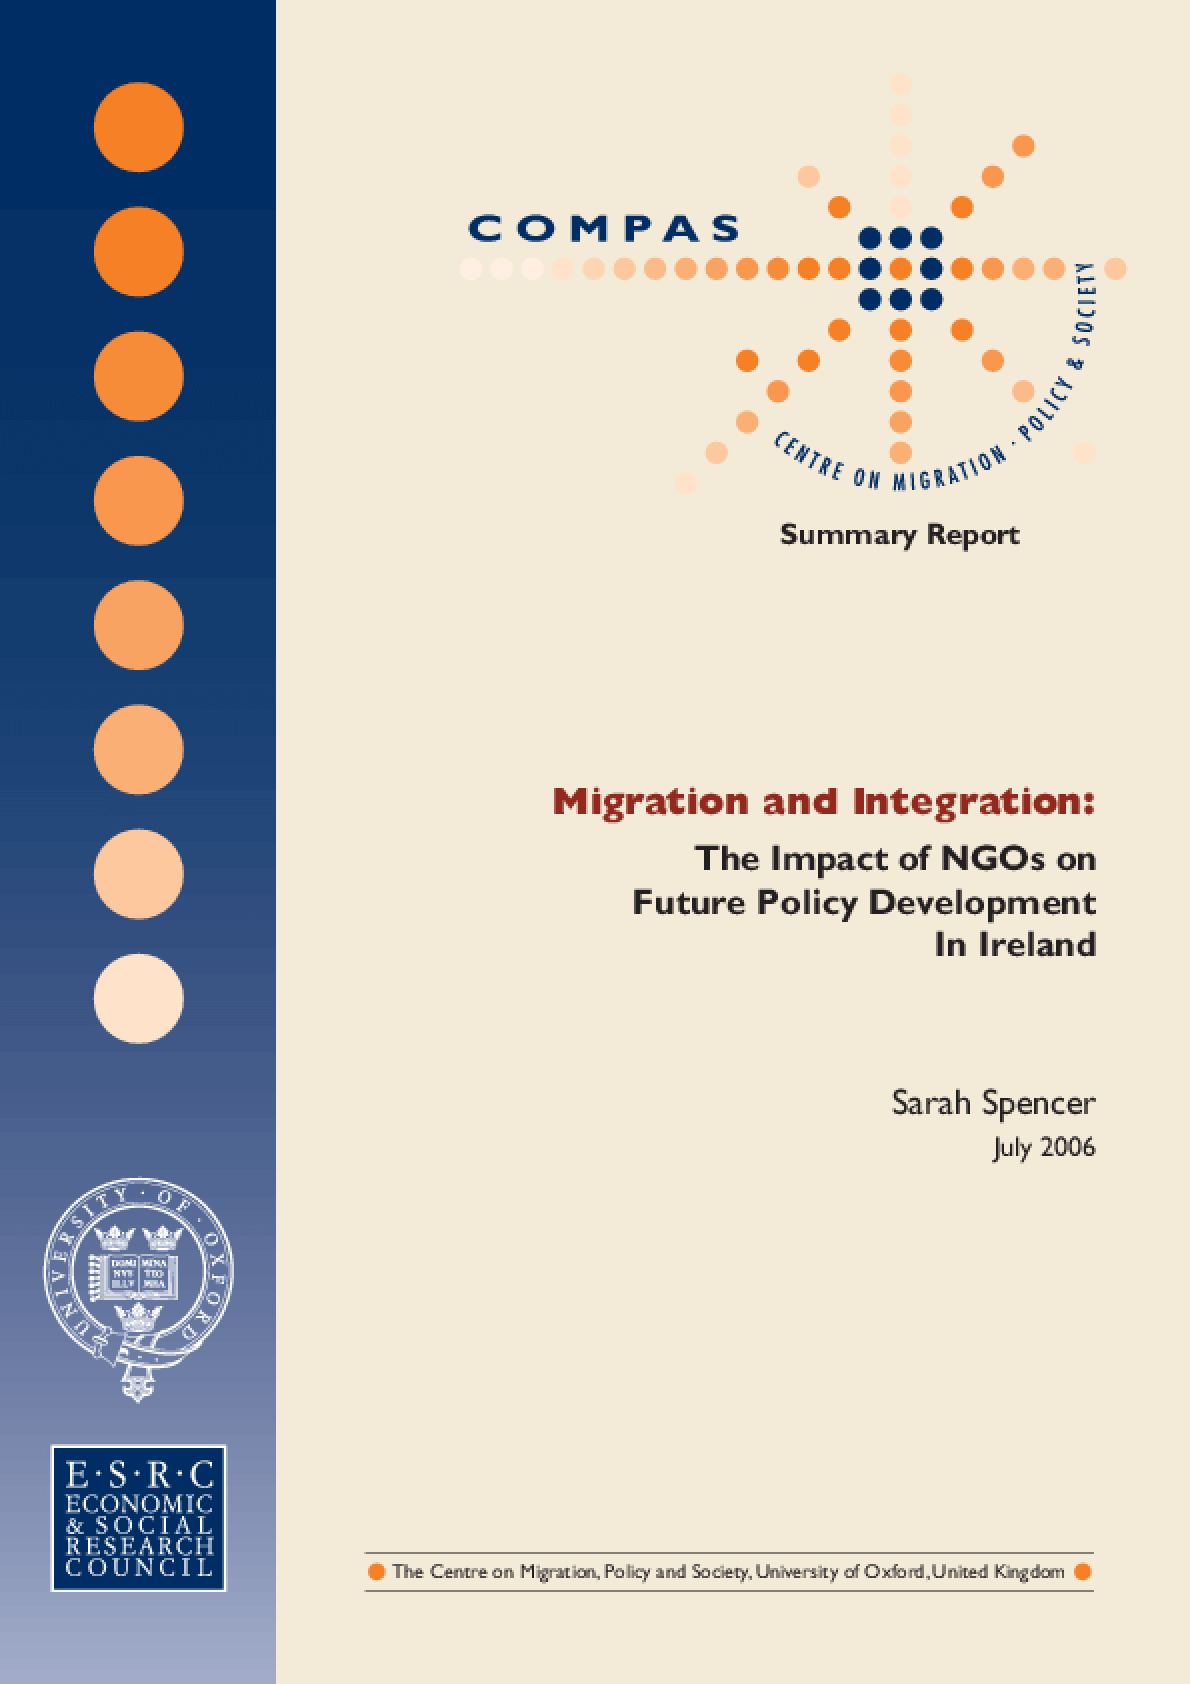 Migration and Integration: The Impact of NGOs on Future Policy Development In Ireland Summary Report